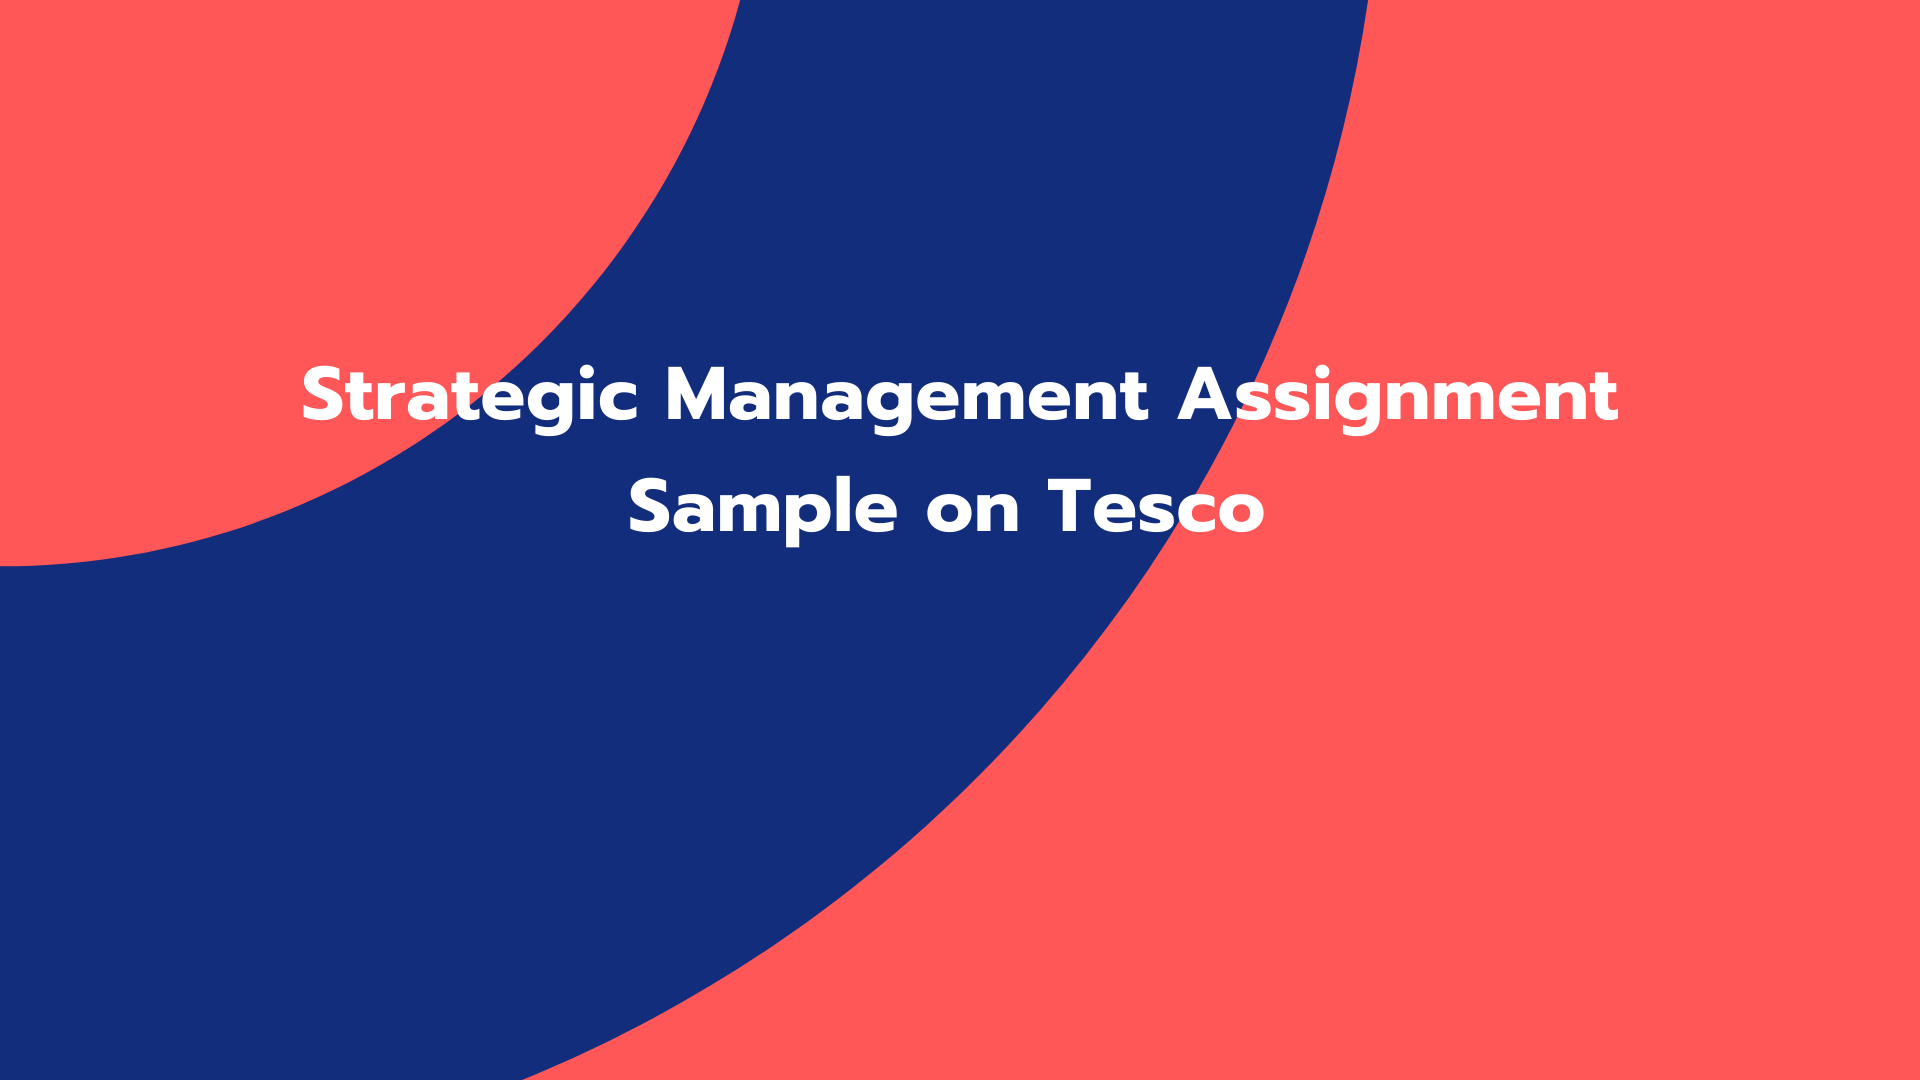 Strategic Management Assignment Sample on Tesco